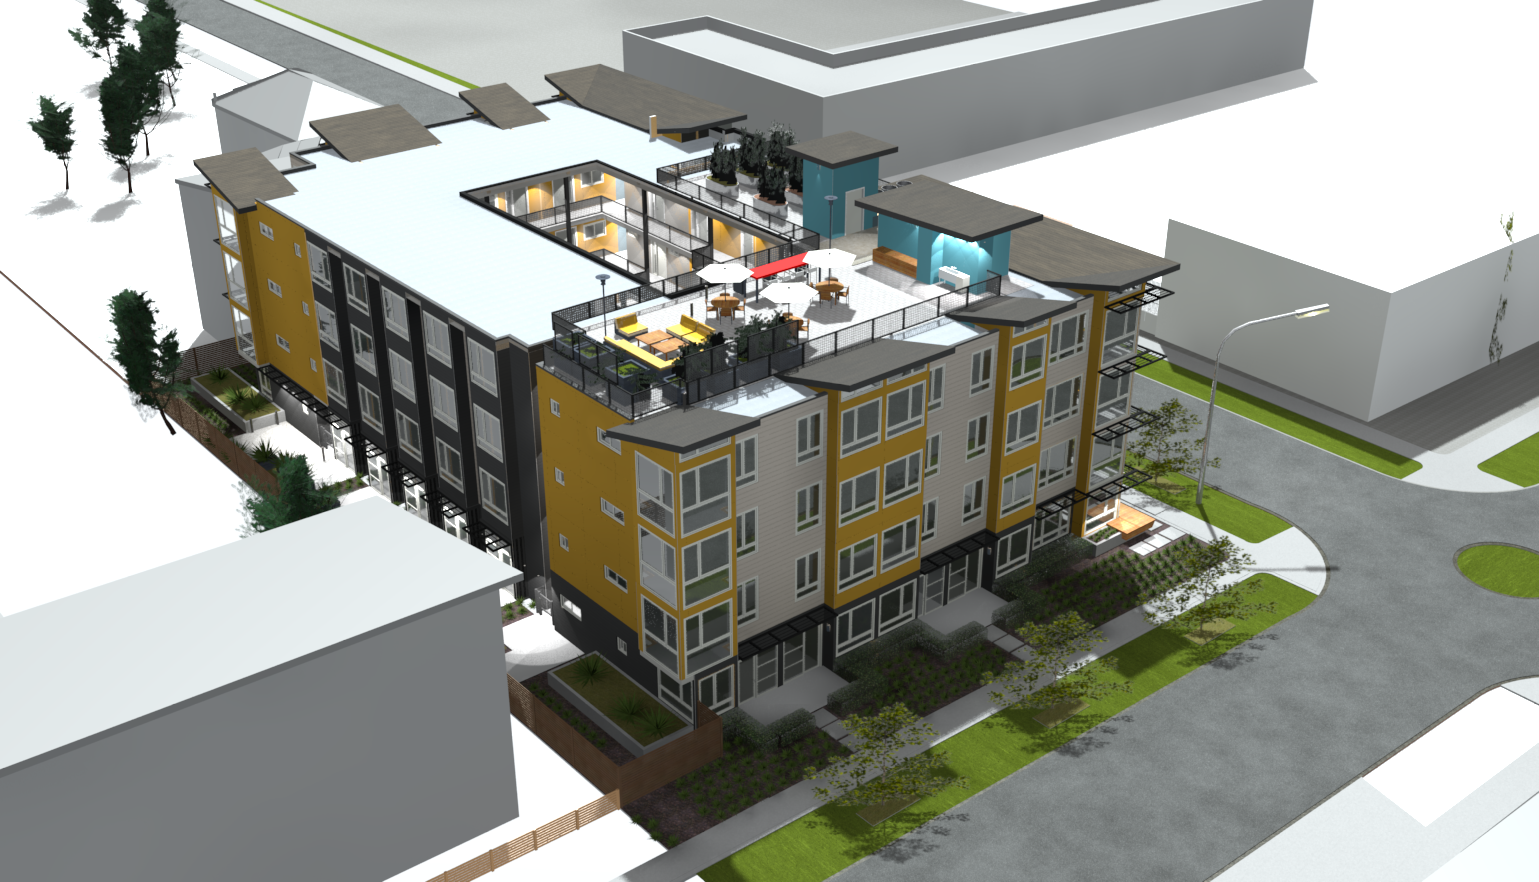 architecture firms using archicad powered by archicad rutledge maul tackles multiple